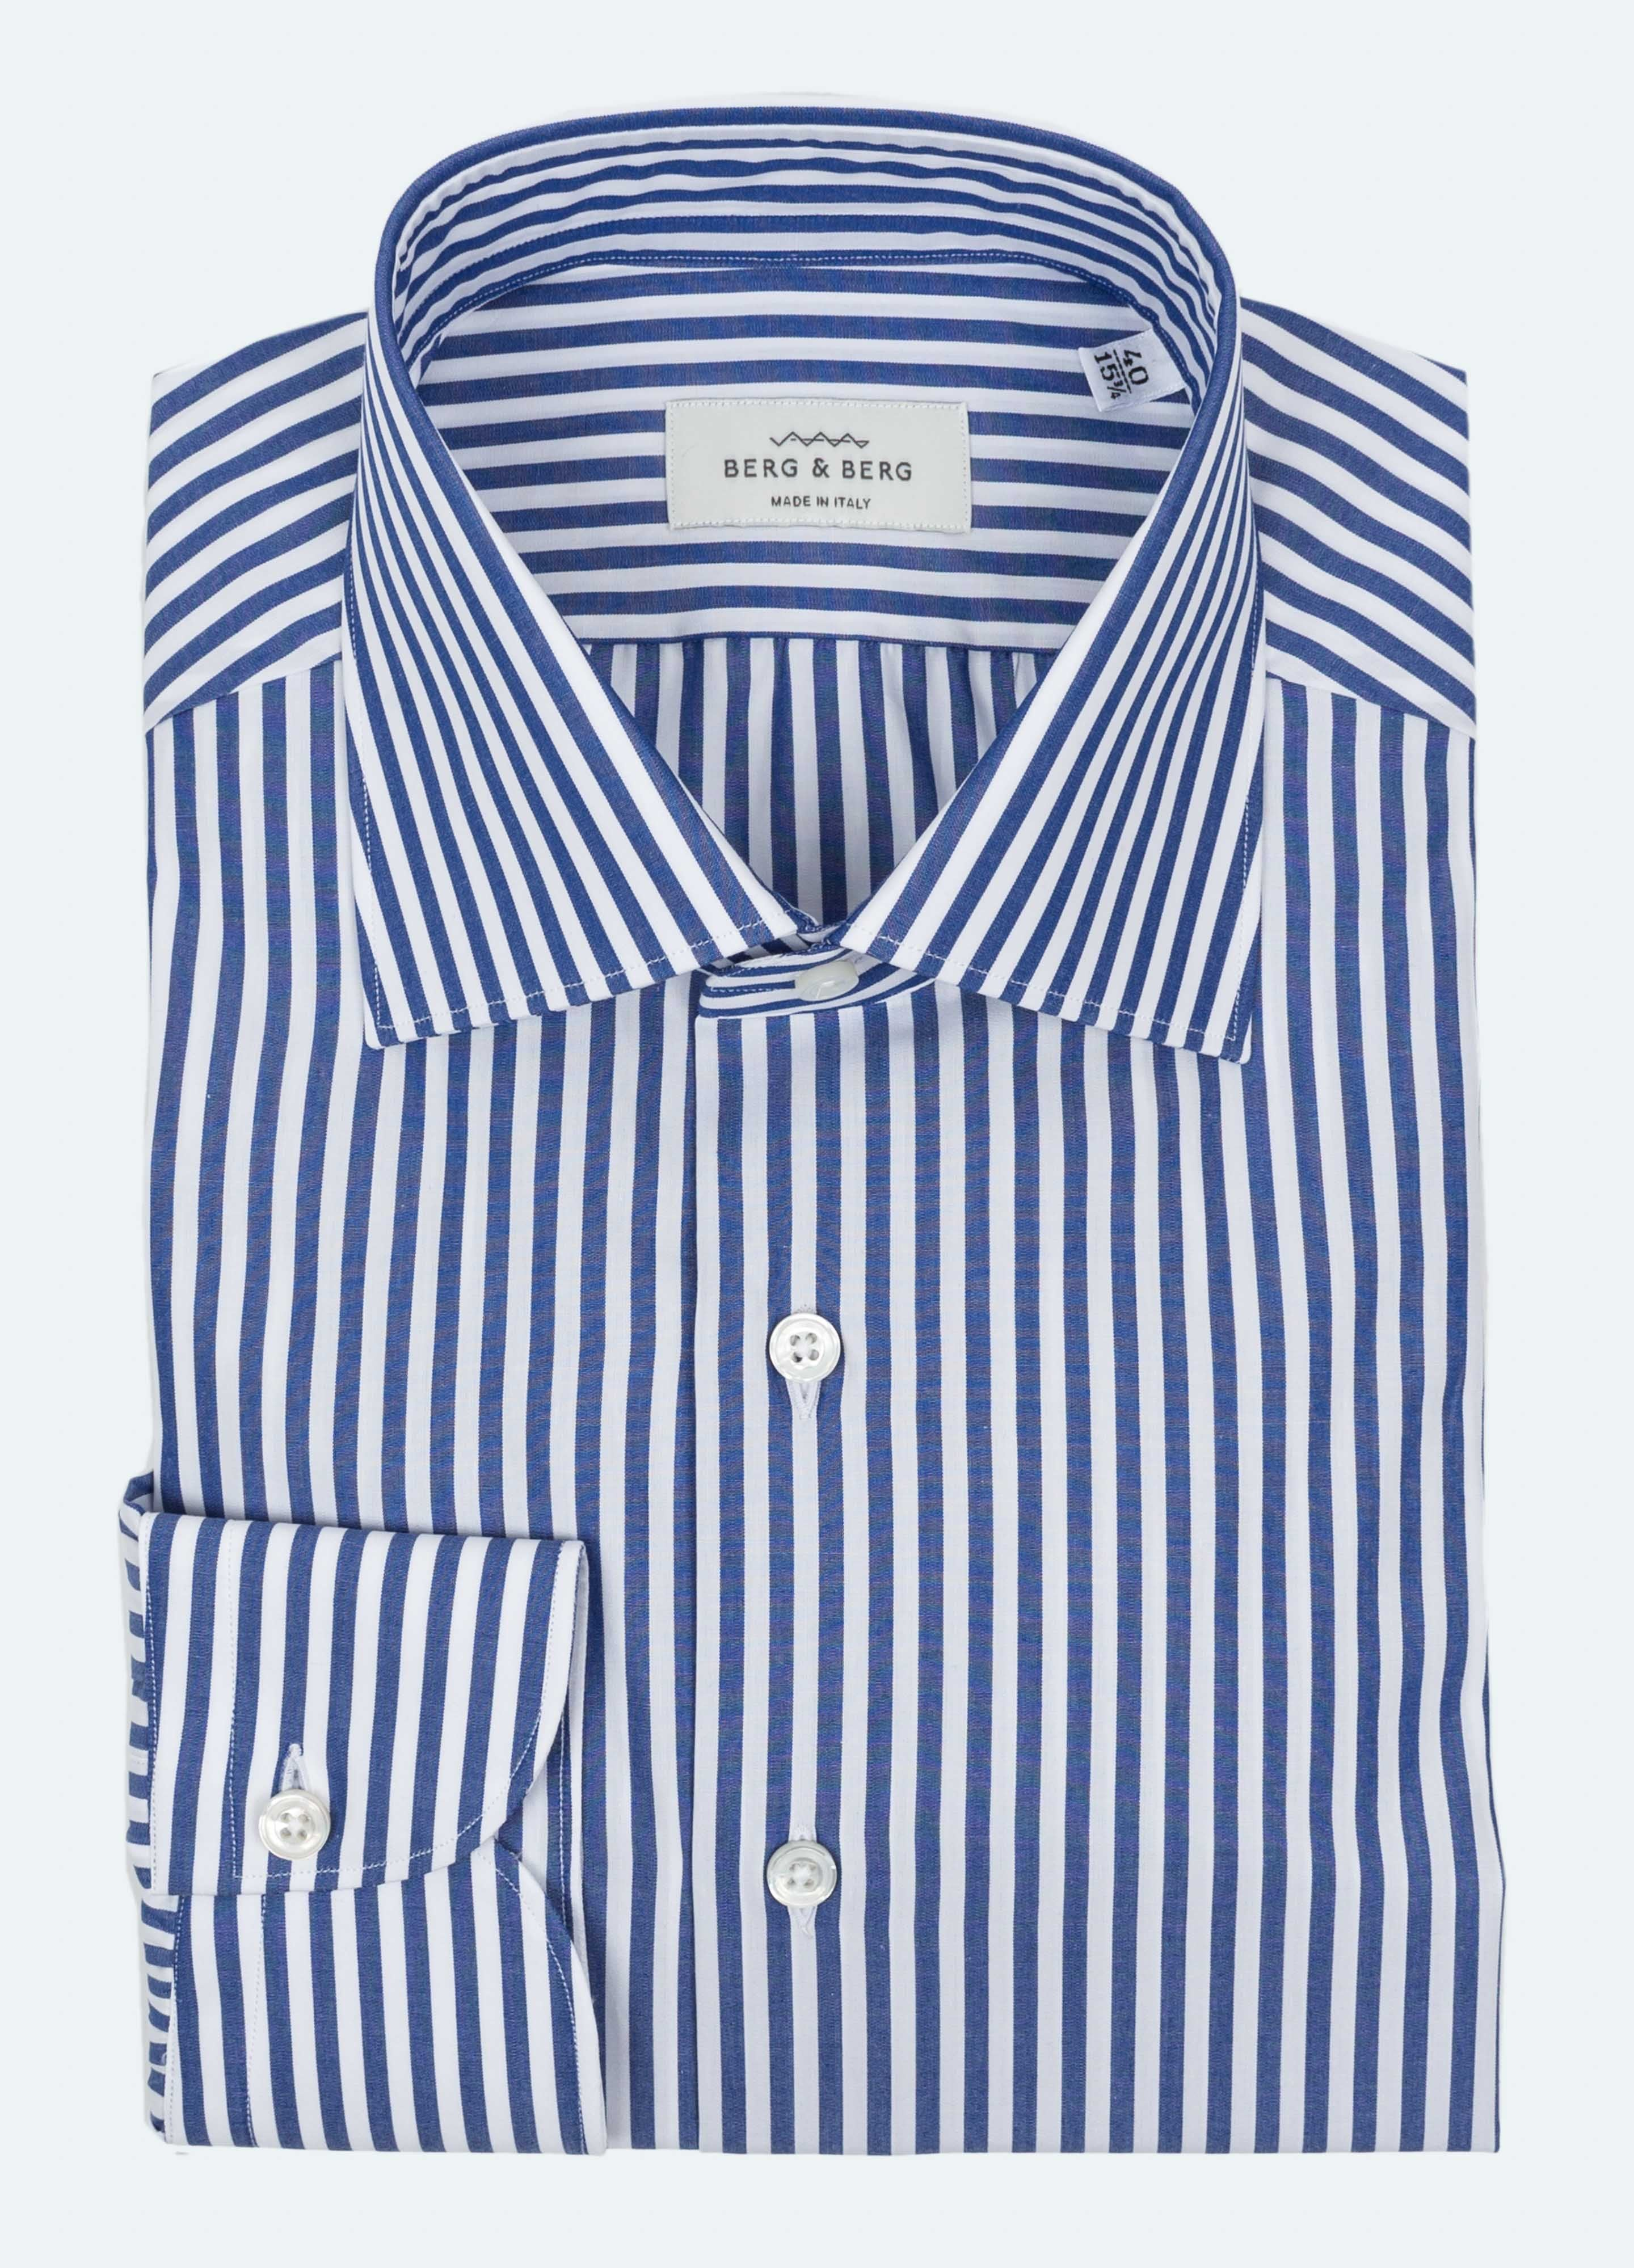 Handmade Striped Spread Collar Shirt